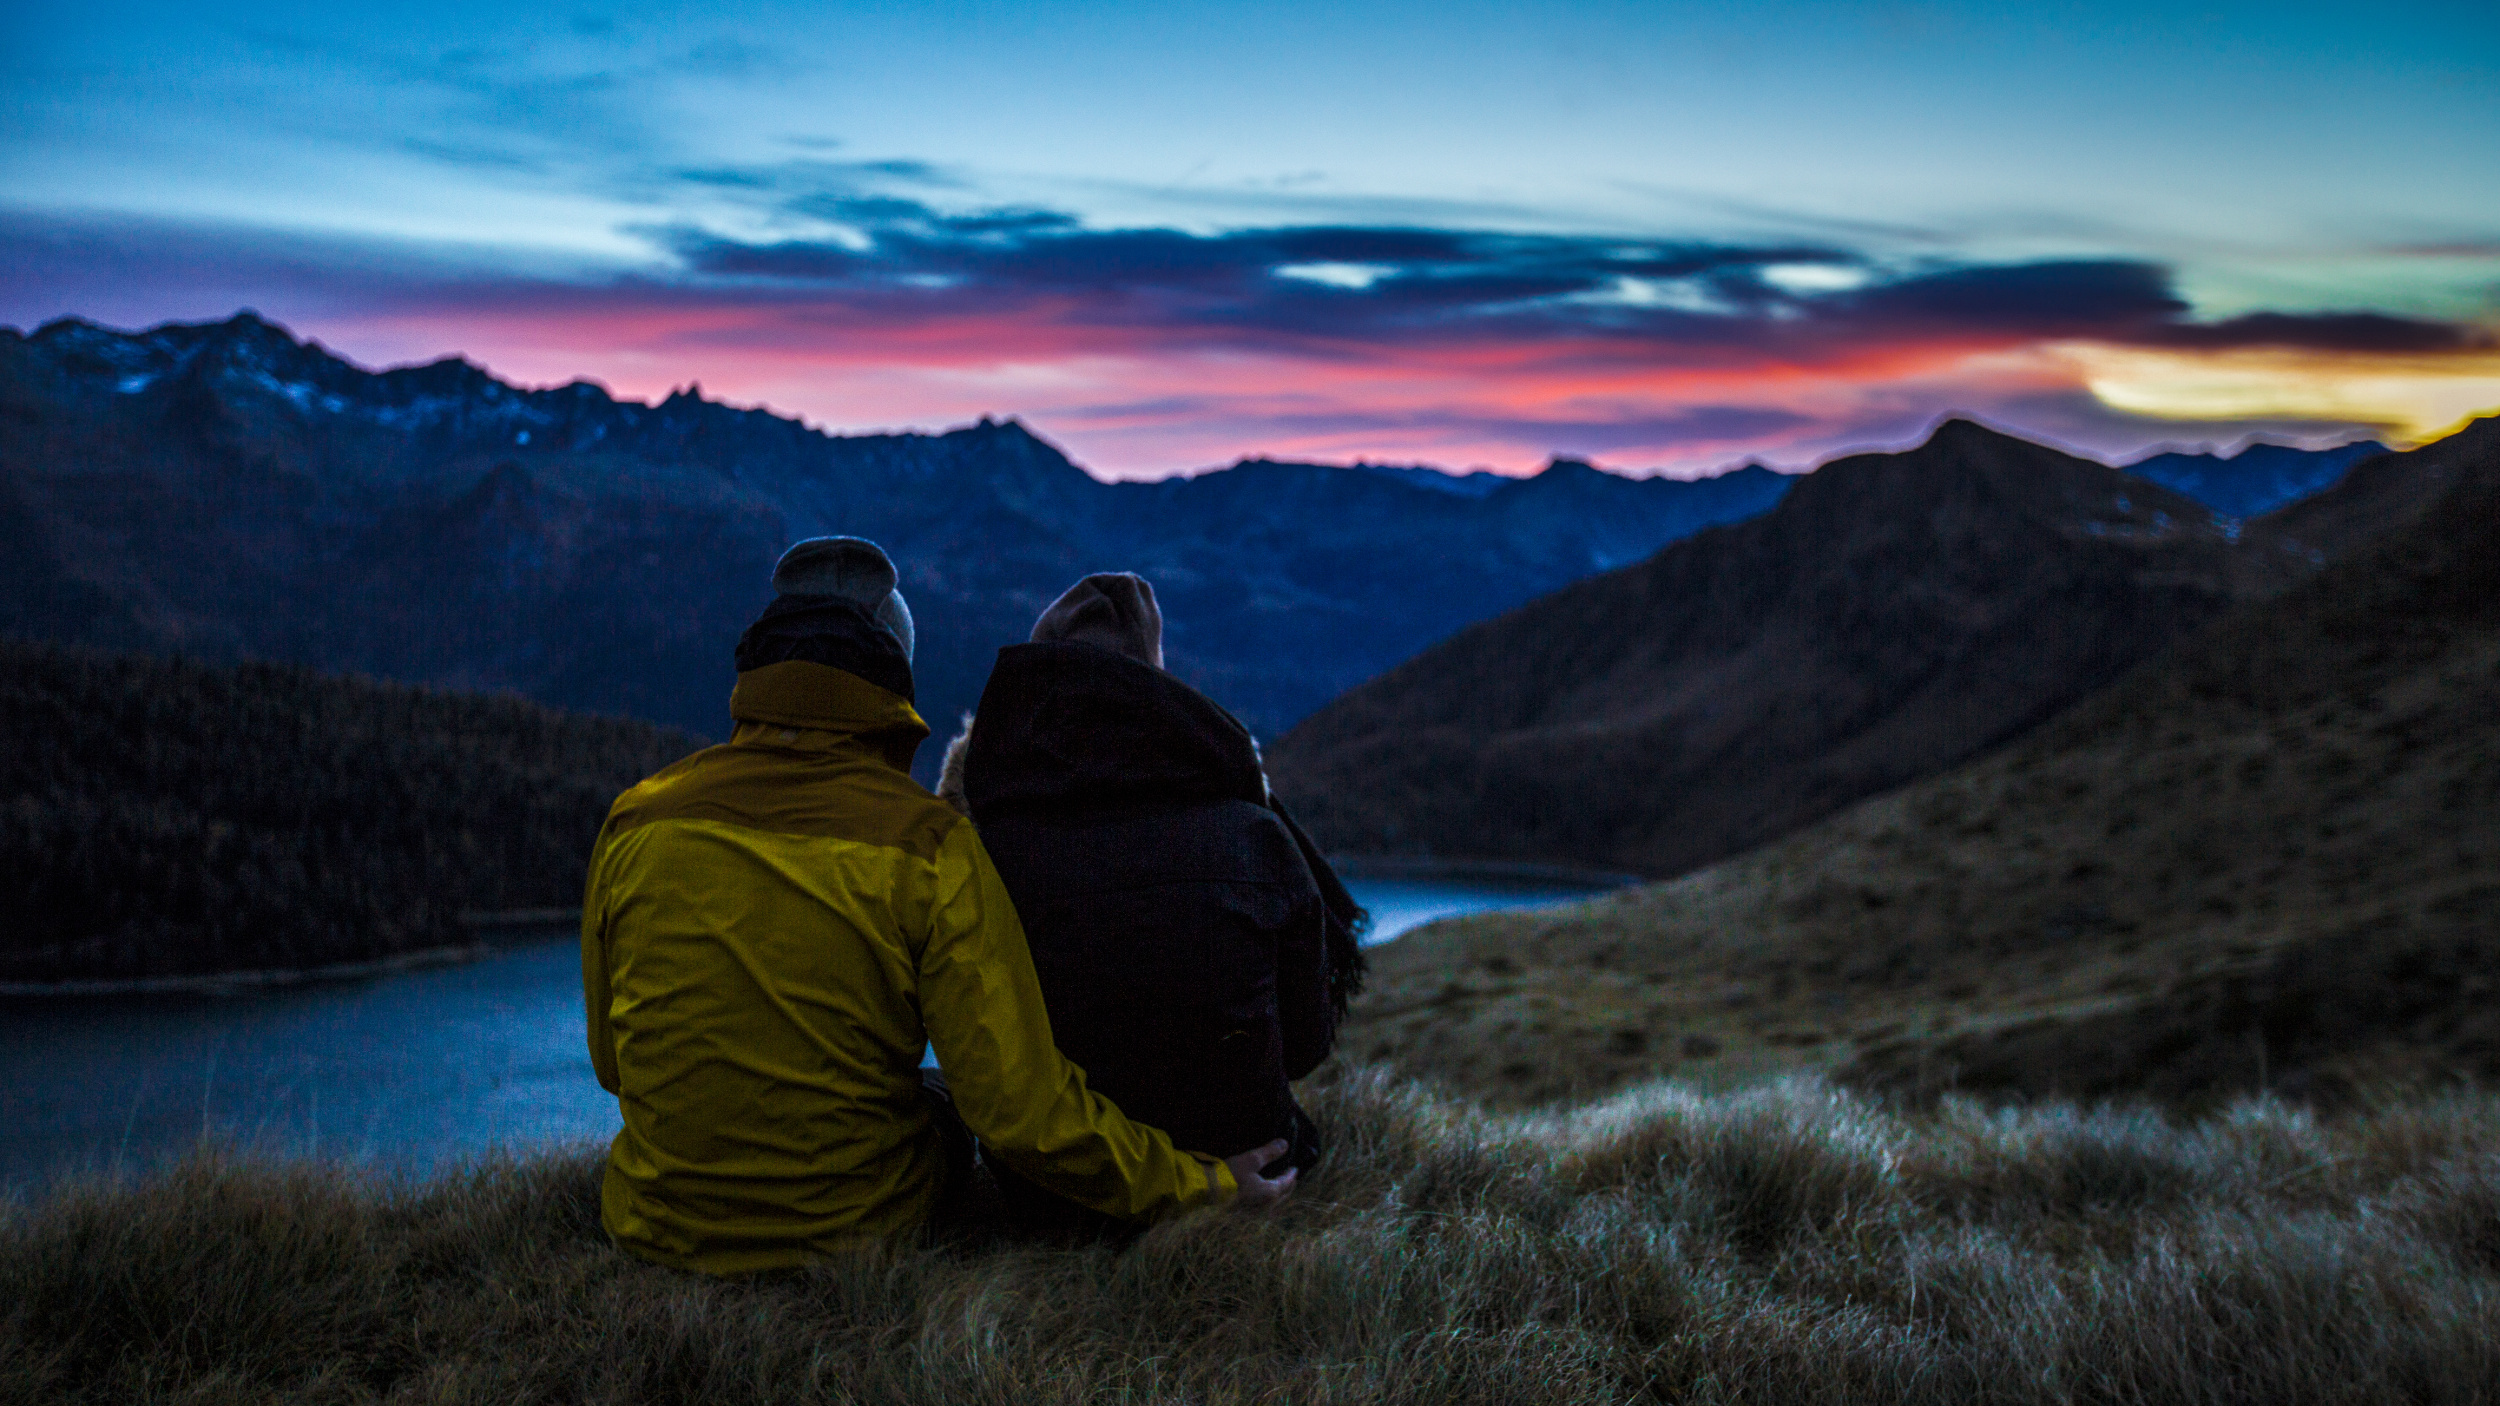 Couple Hiking at sunset in the mountains